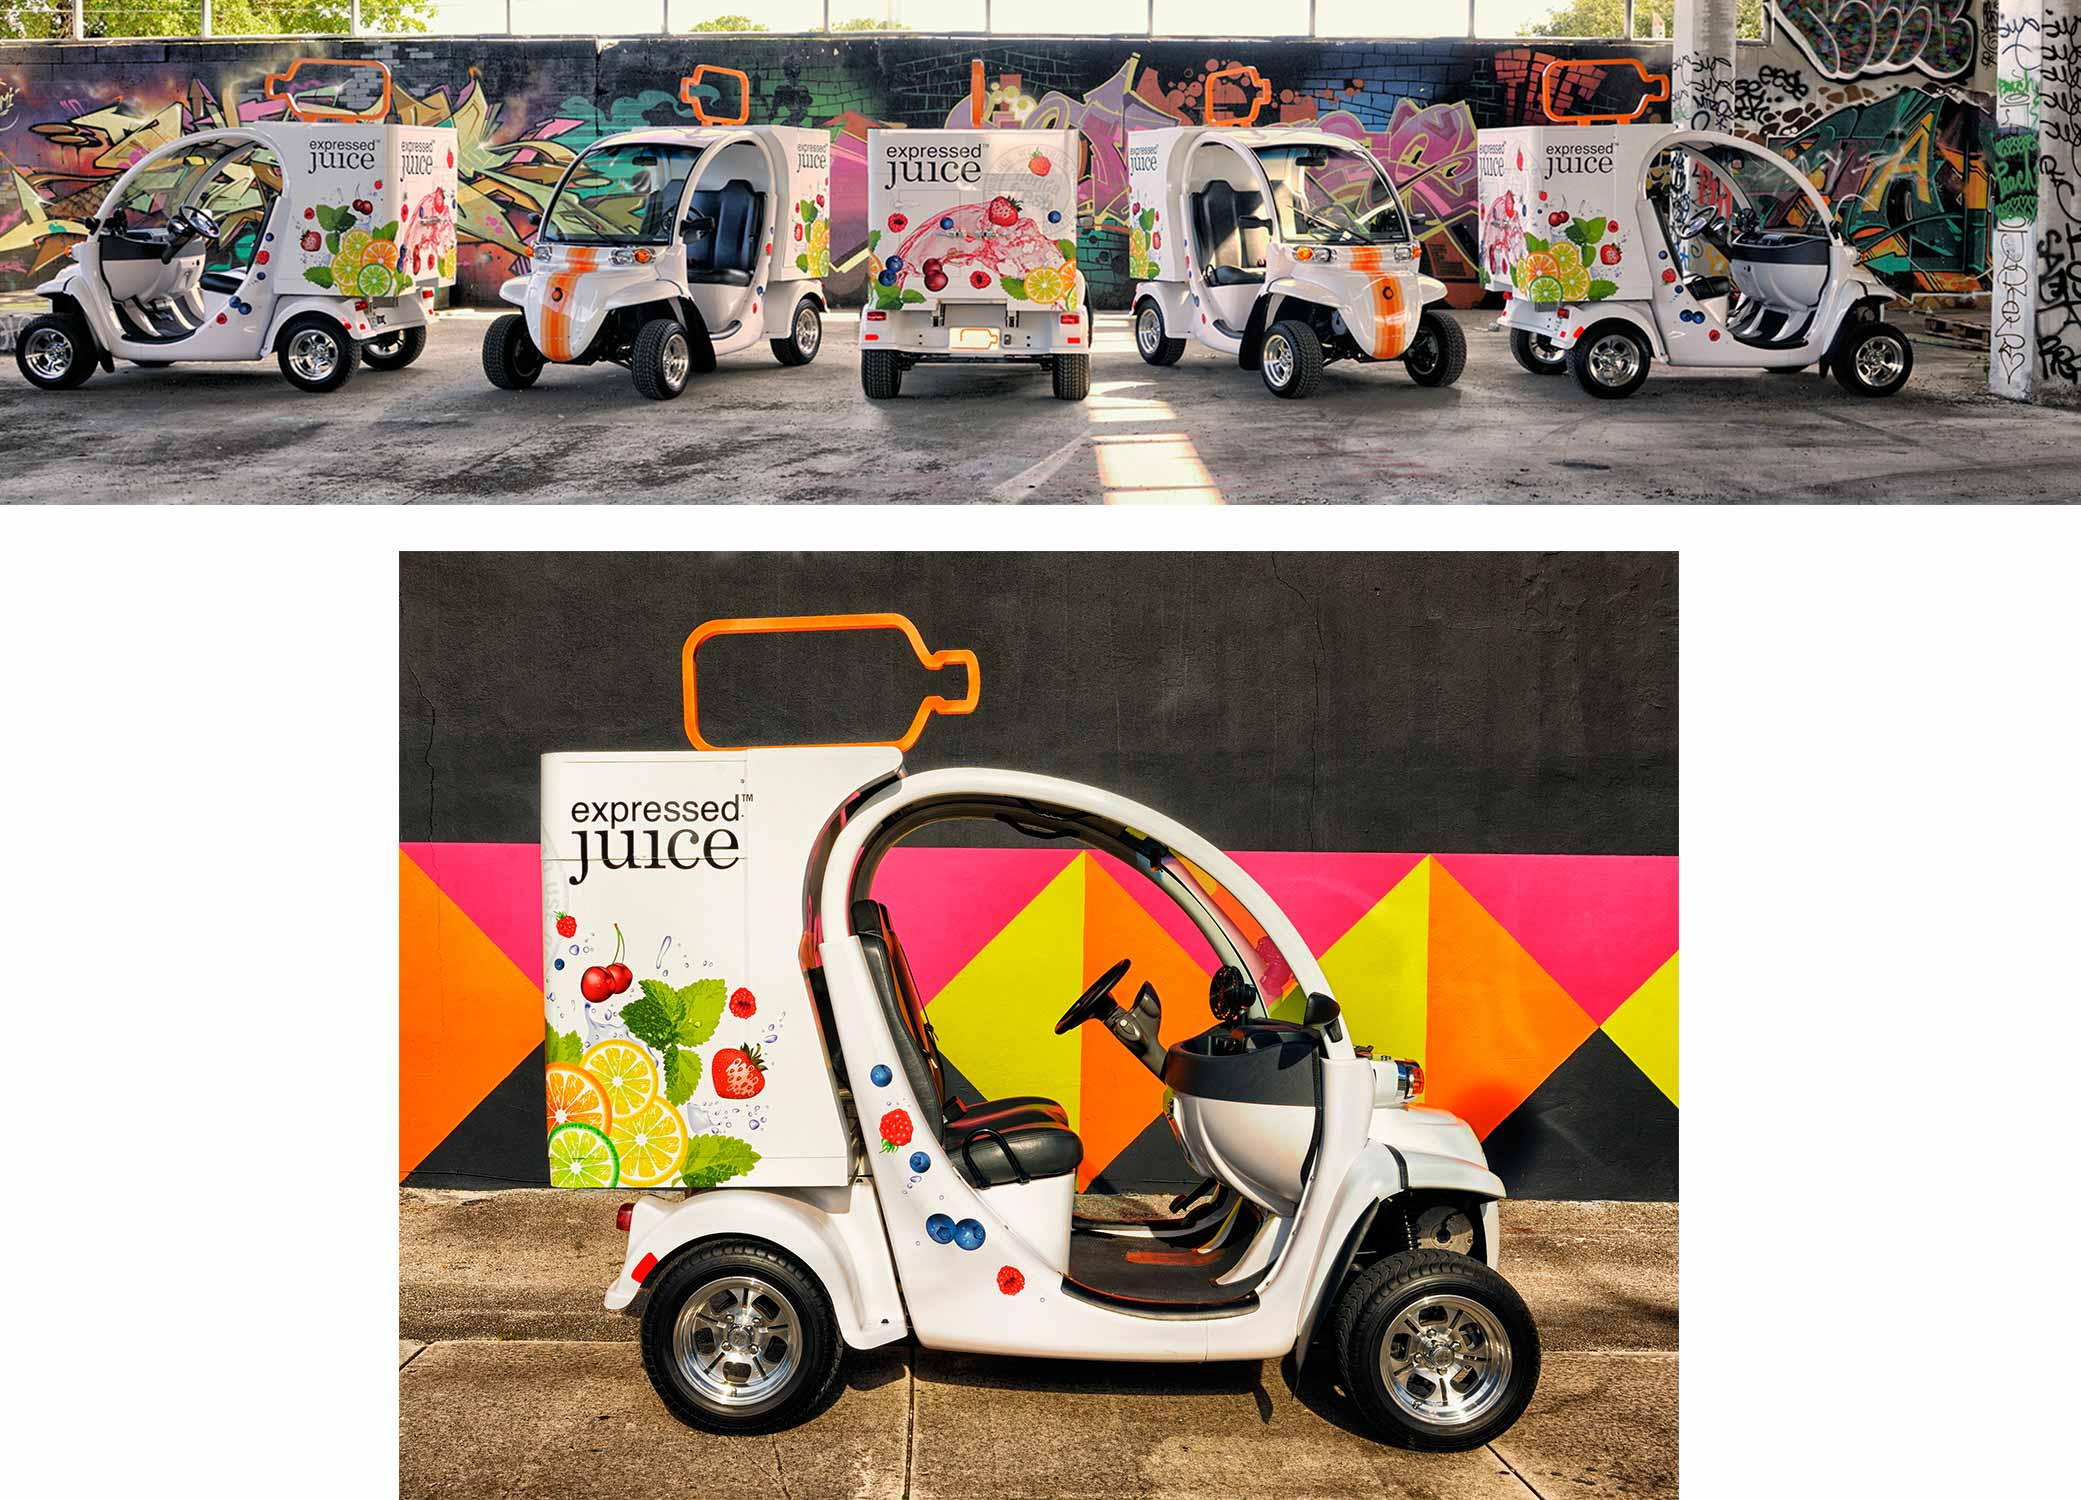 Expressed Juice vehicle graphics on white golf carts shown from various angles against a colorful graffiti wall.